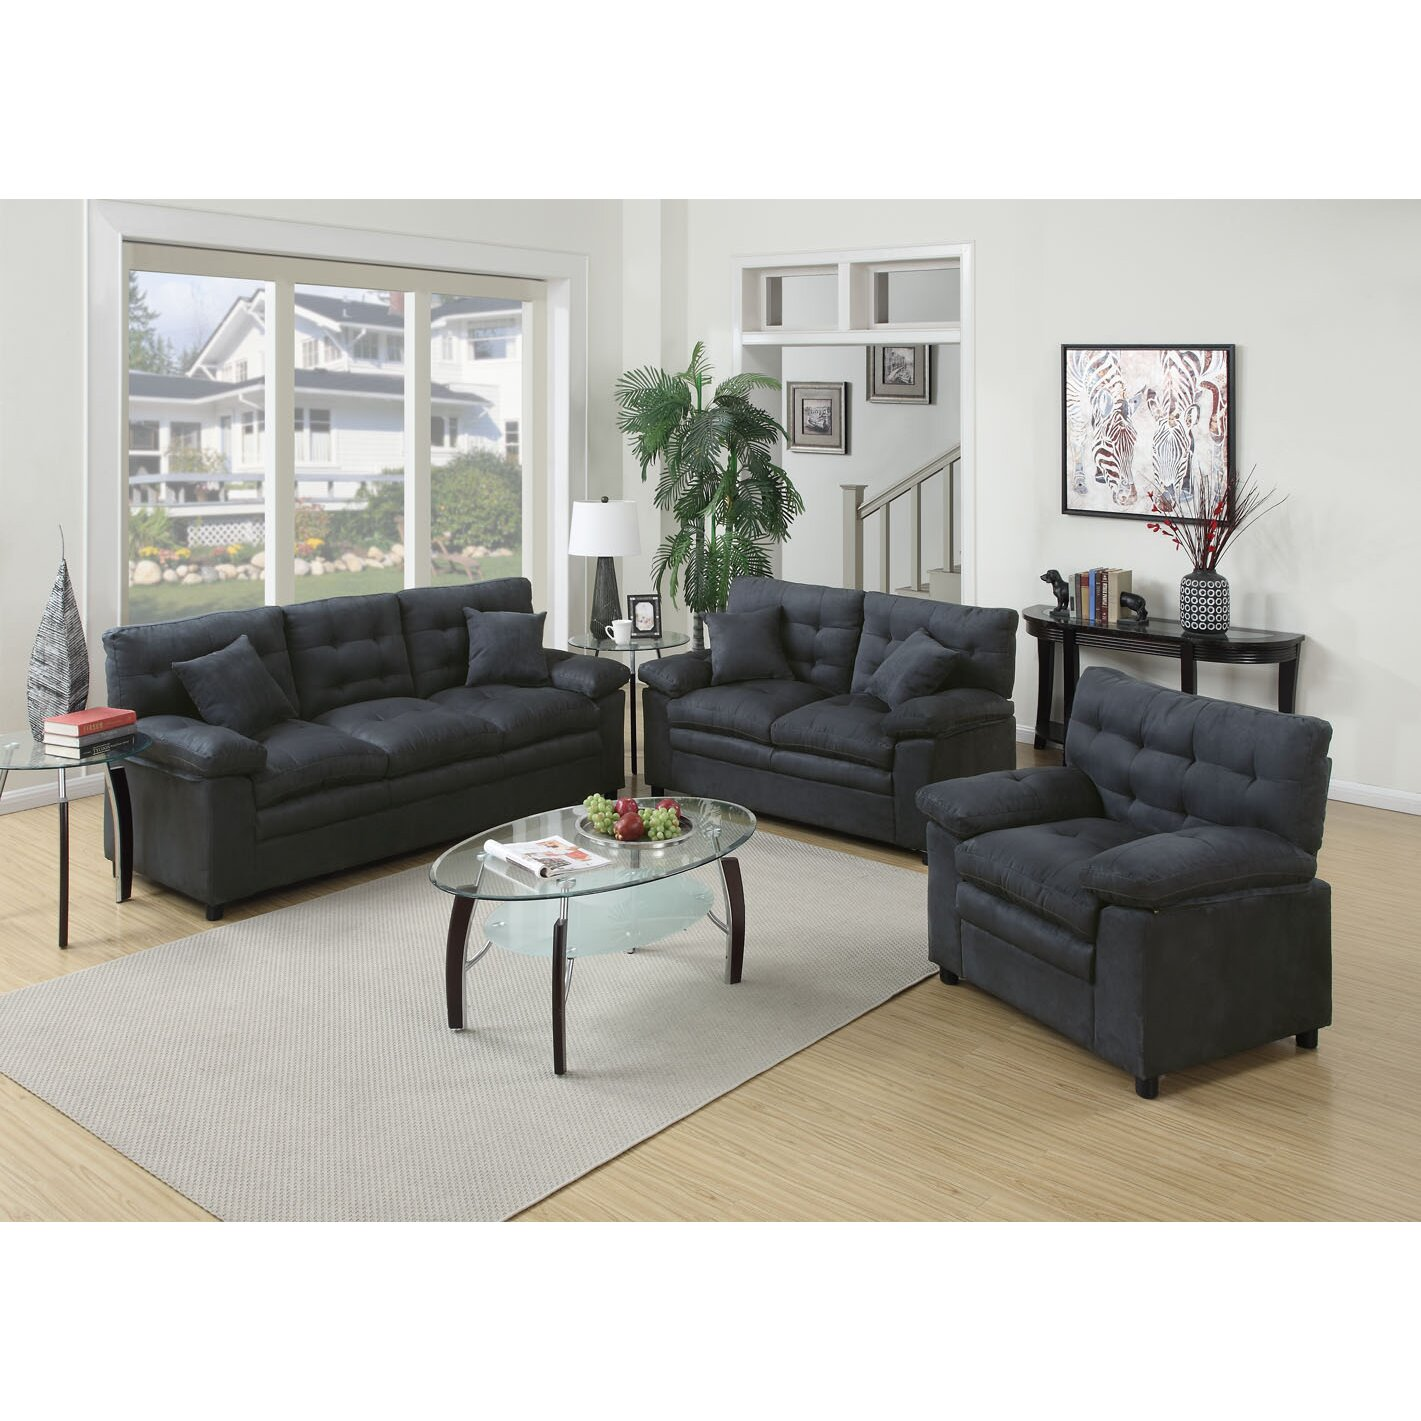 Poundex bobkona colona 3 piece living room set reviews for Living room furniture pieces